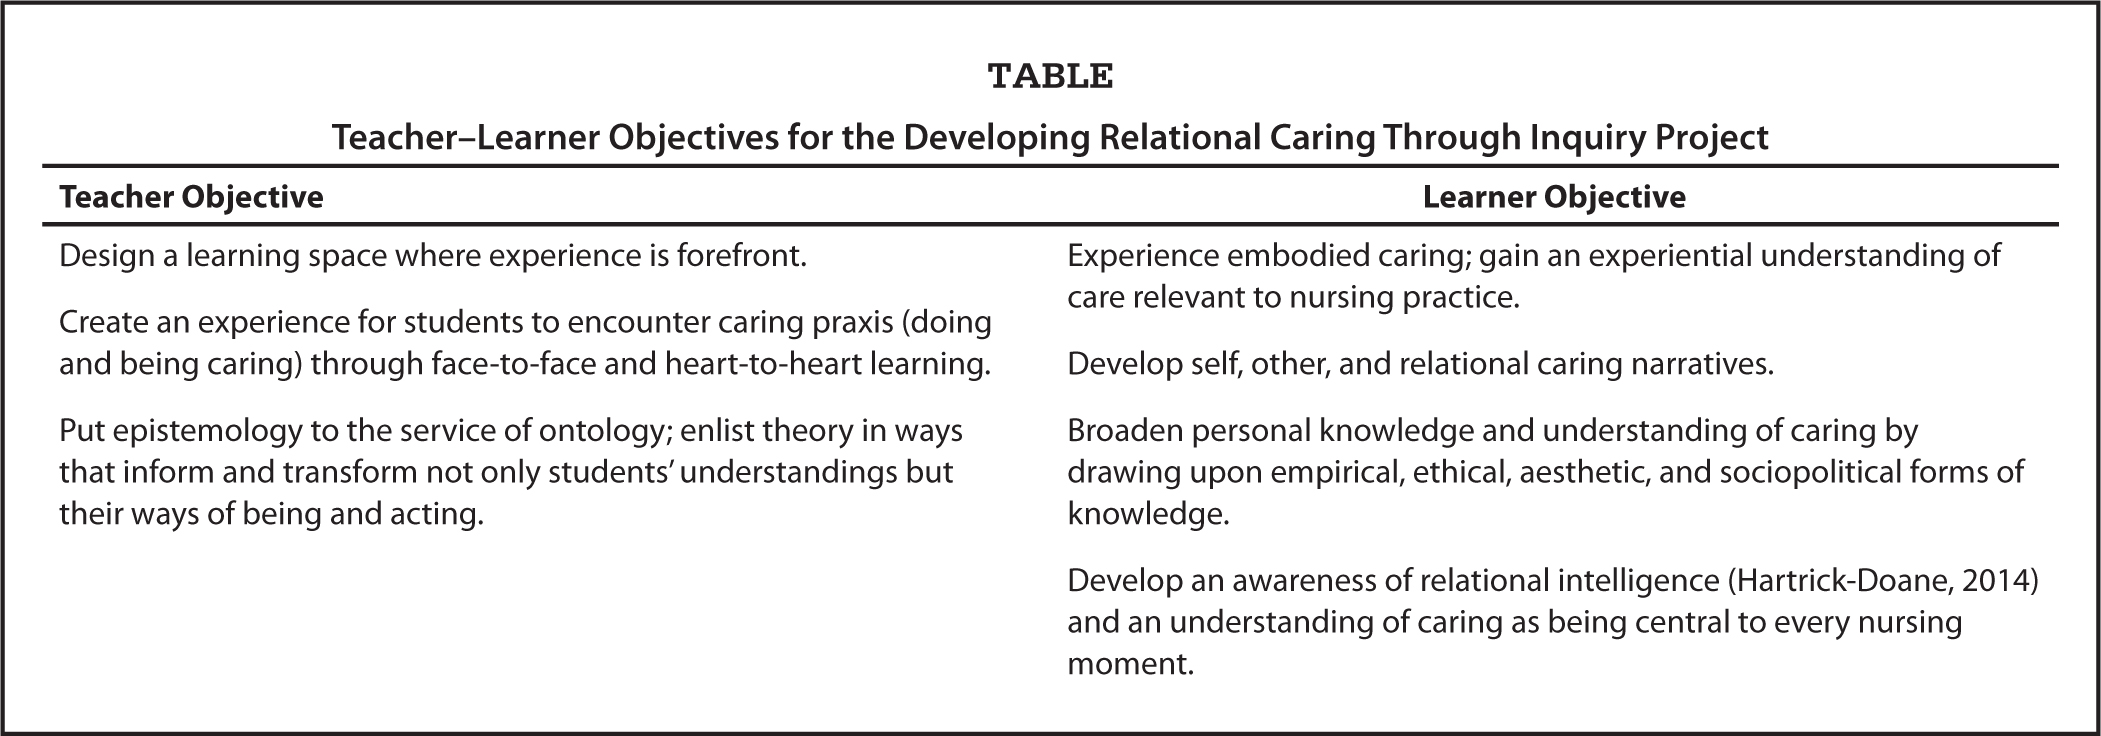 Teacher–Learner Objectives for the Developing Relational Caring Through Inquiry Project